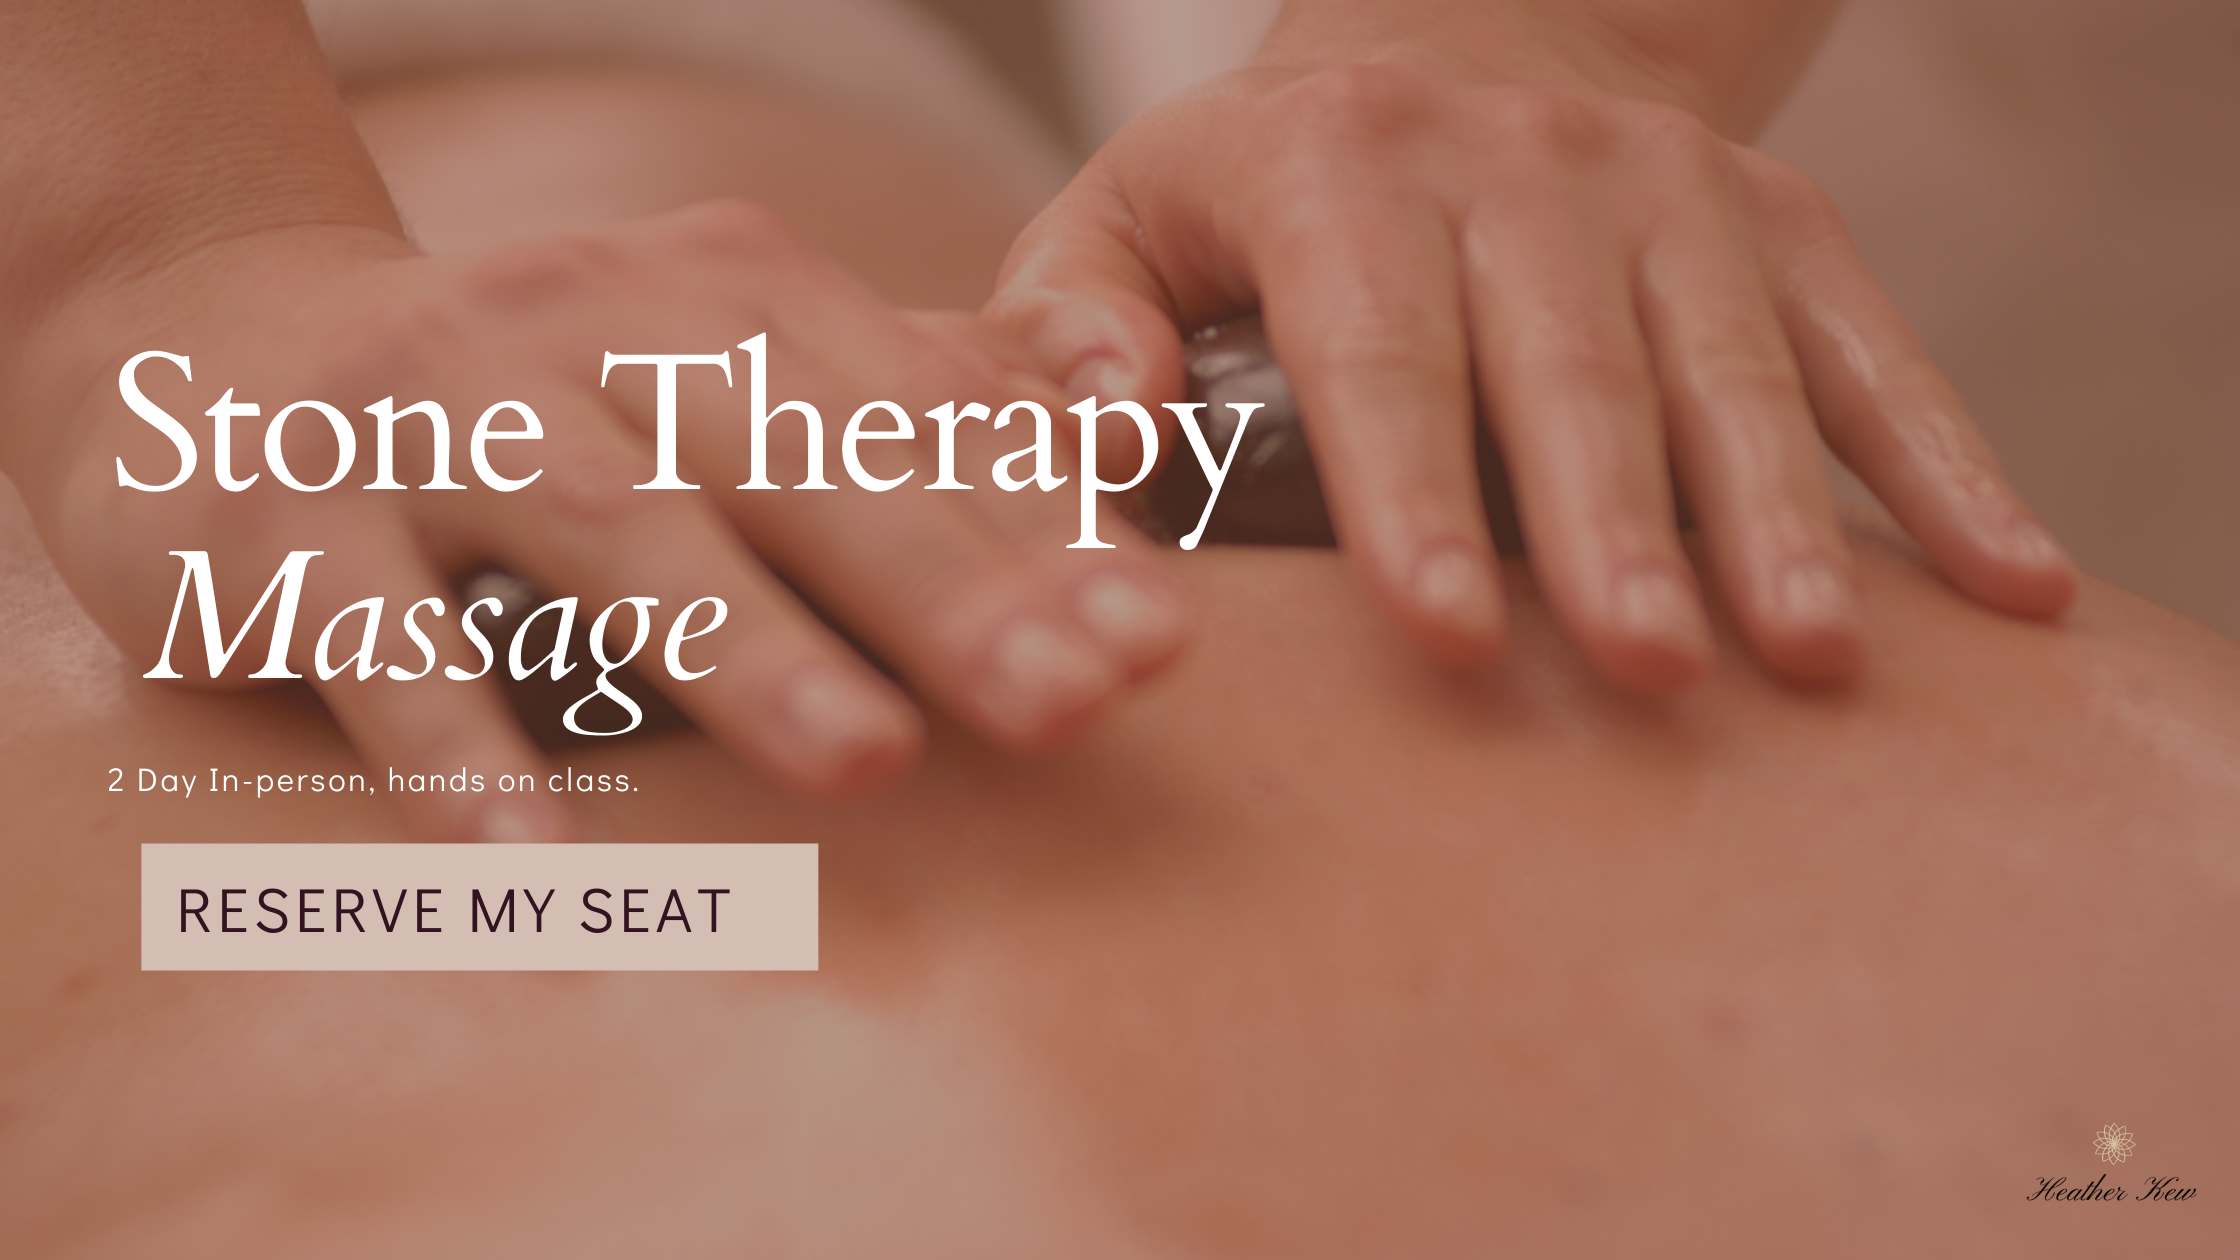 Stone Therapy Website Header